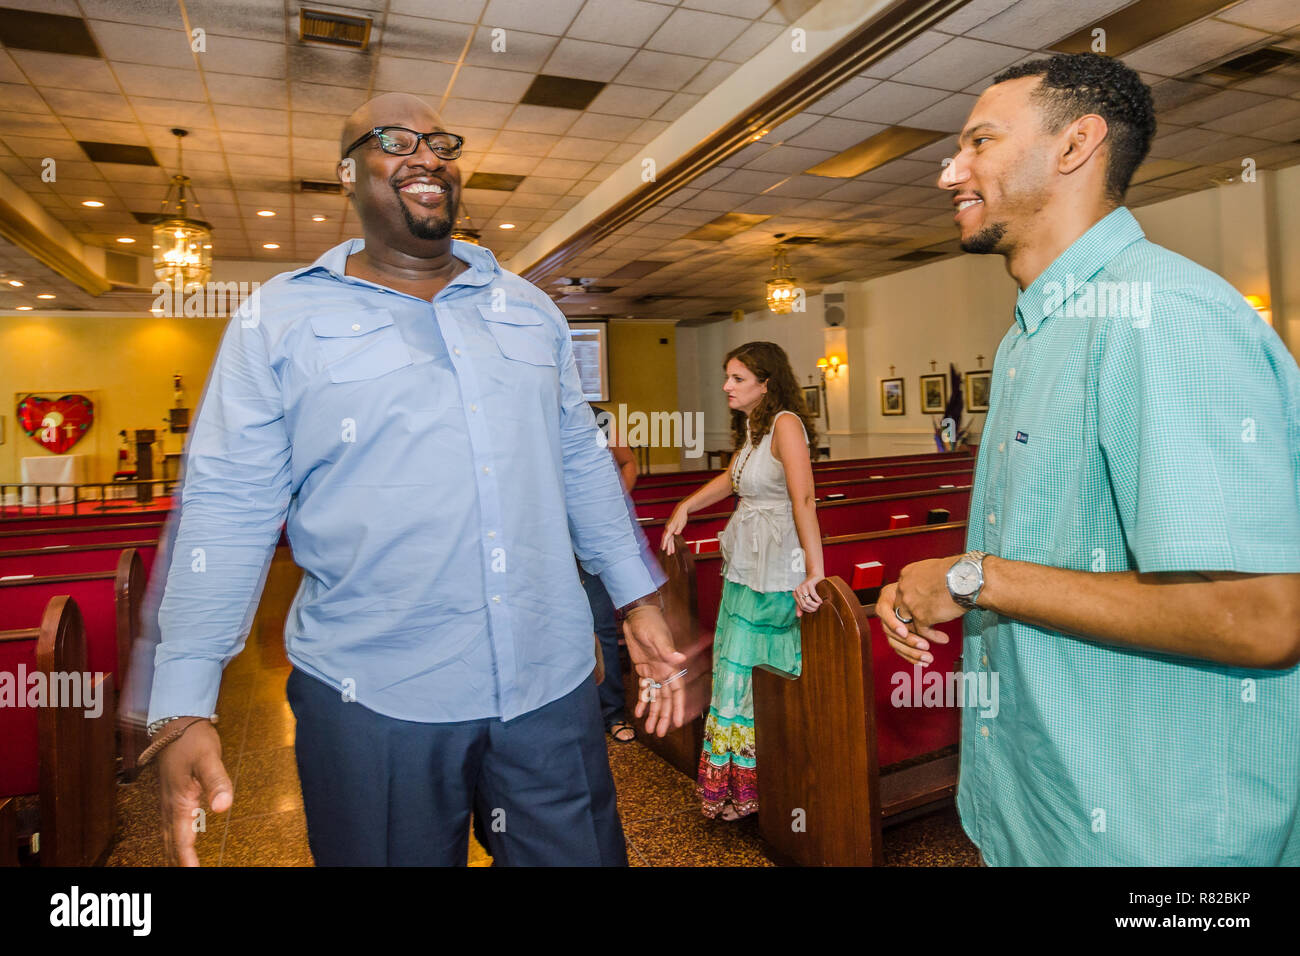 Urban Hope Community Church pastor Alton Hardy talks with church treasurer Dion Watts after the service, July 19, 2015, in Fairfield, Alabama. - Stock Image